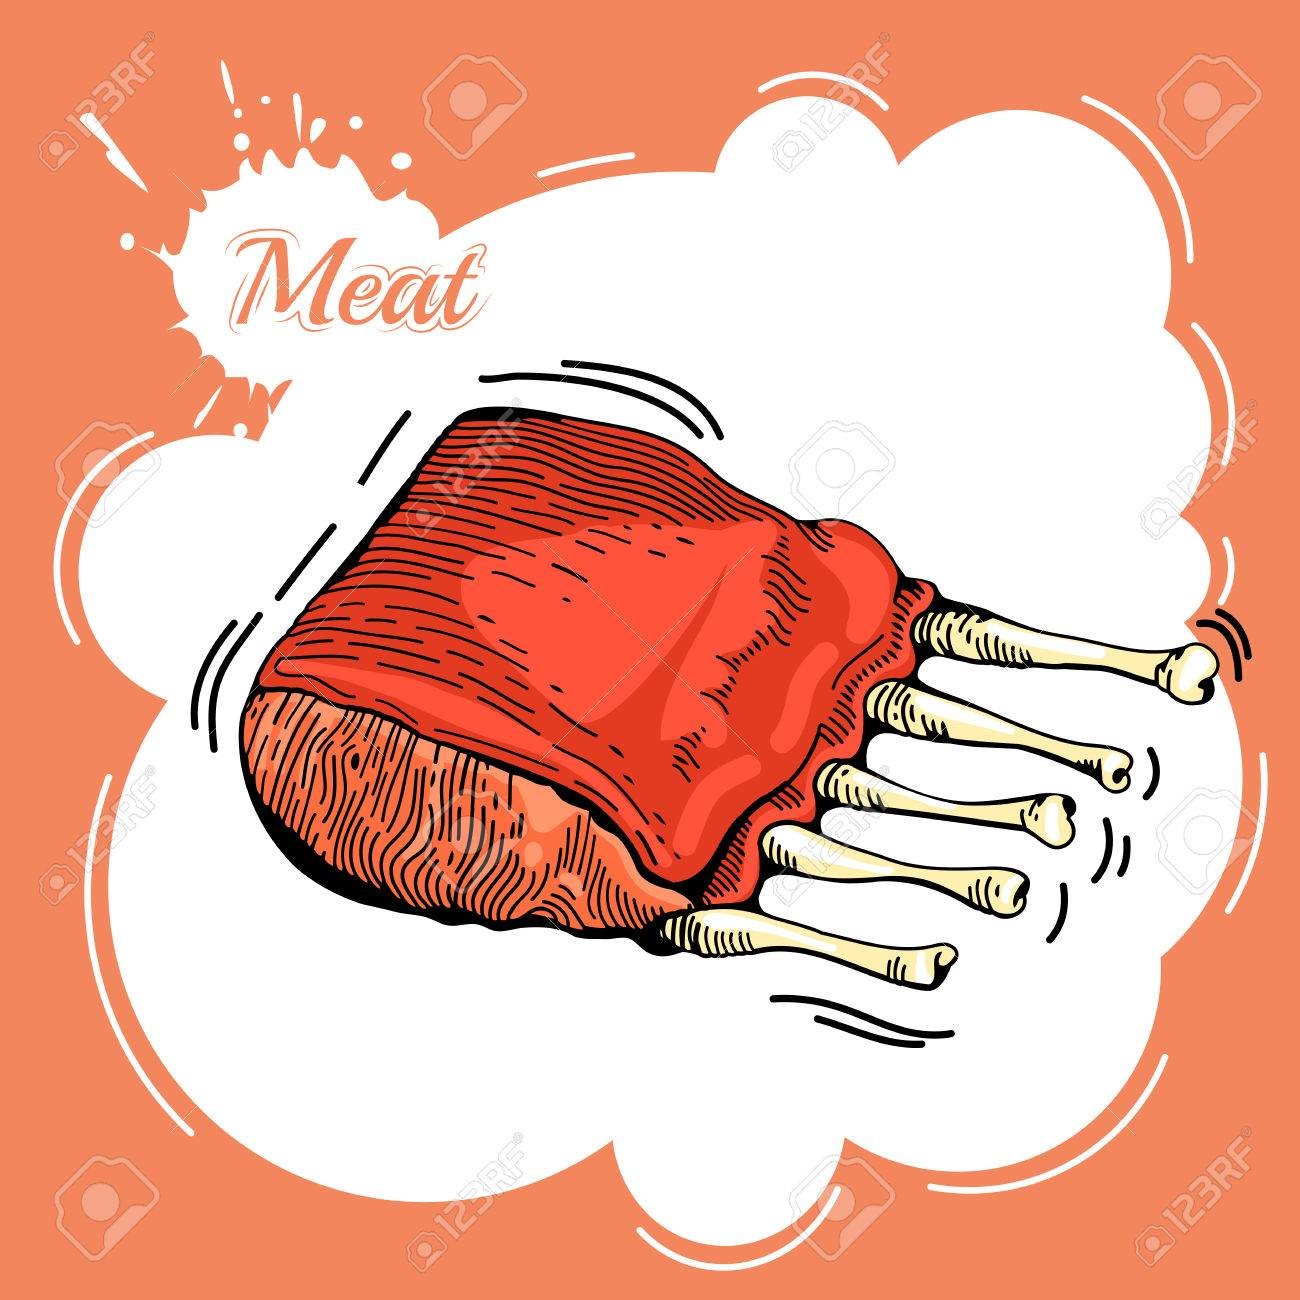 1300x1300 Meat Hand Drawn. Meat Collages. Illustration Of A Steak Meat